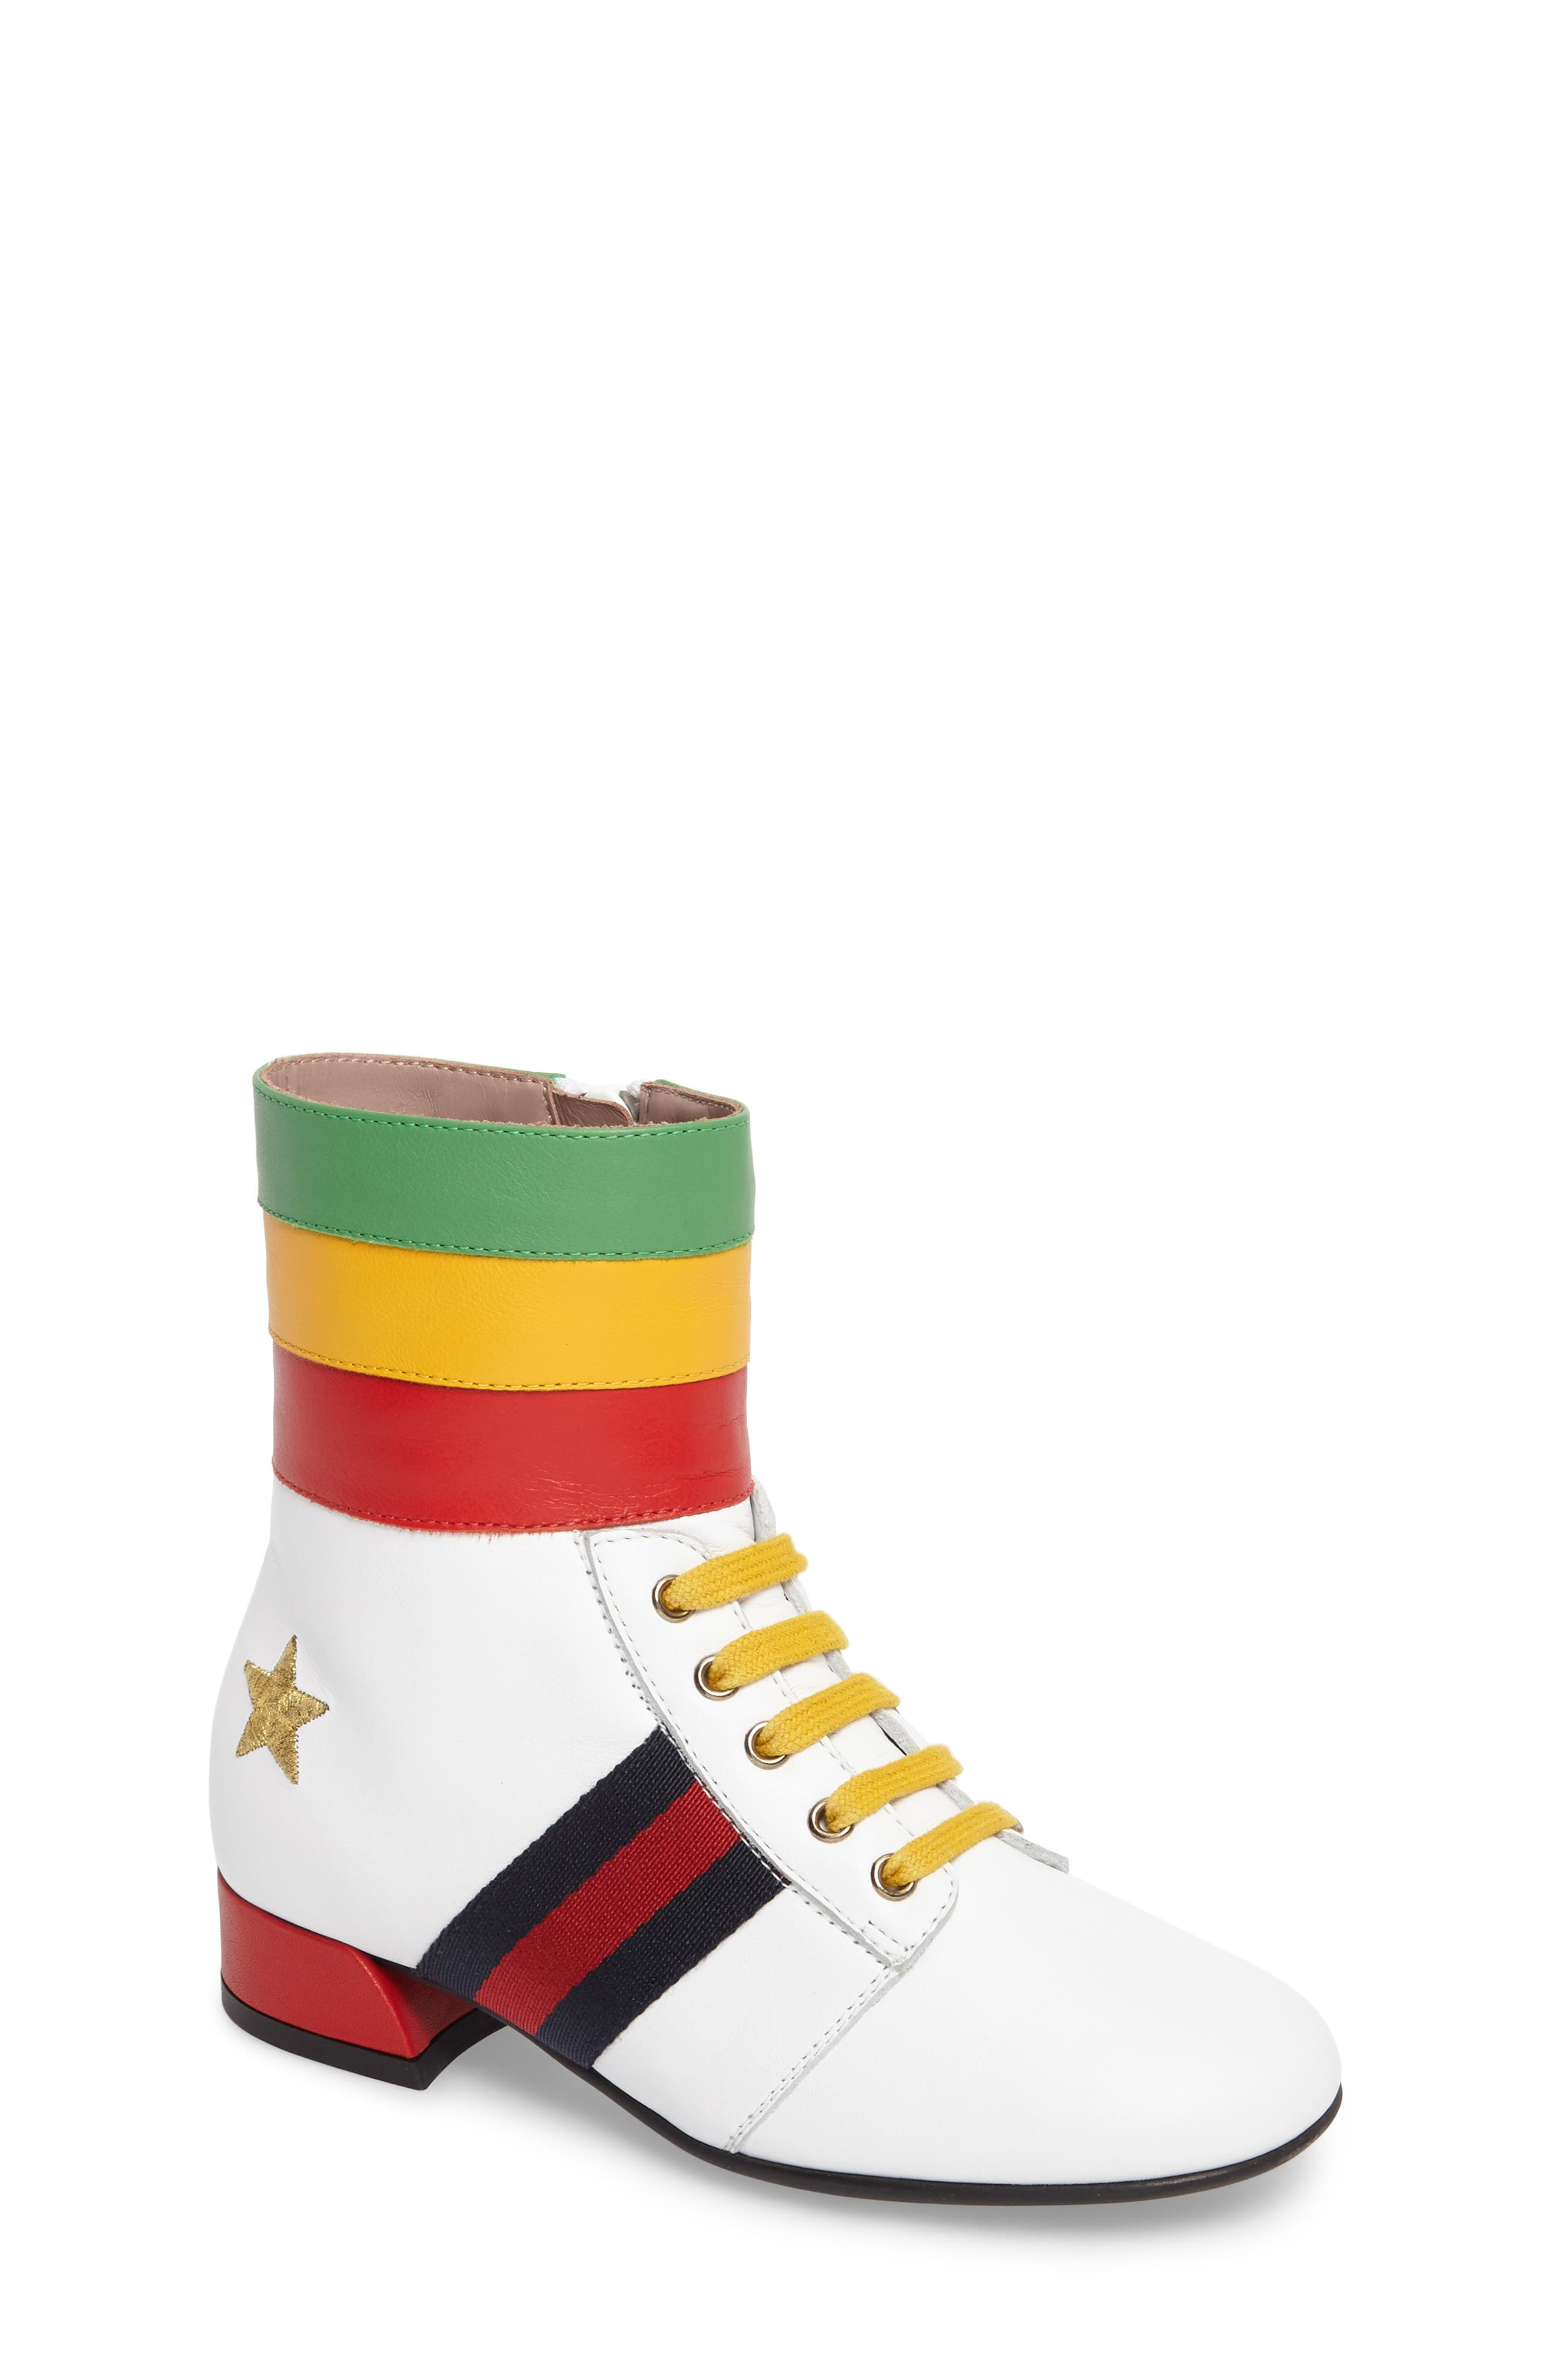 Alternate Image 1 Selected - Gucci Starlette Rainbow Bootie (Toddler & Little Kid)